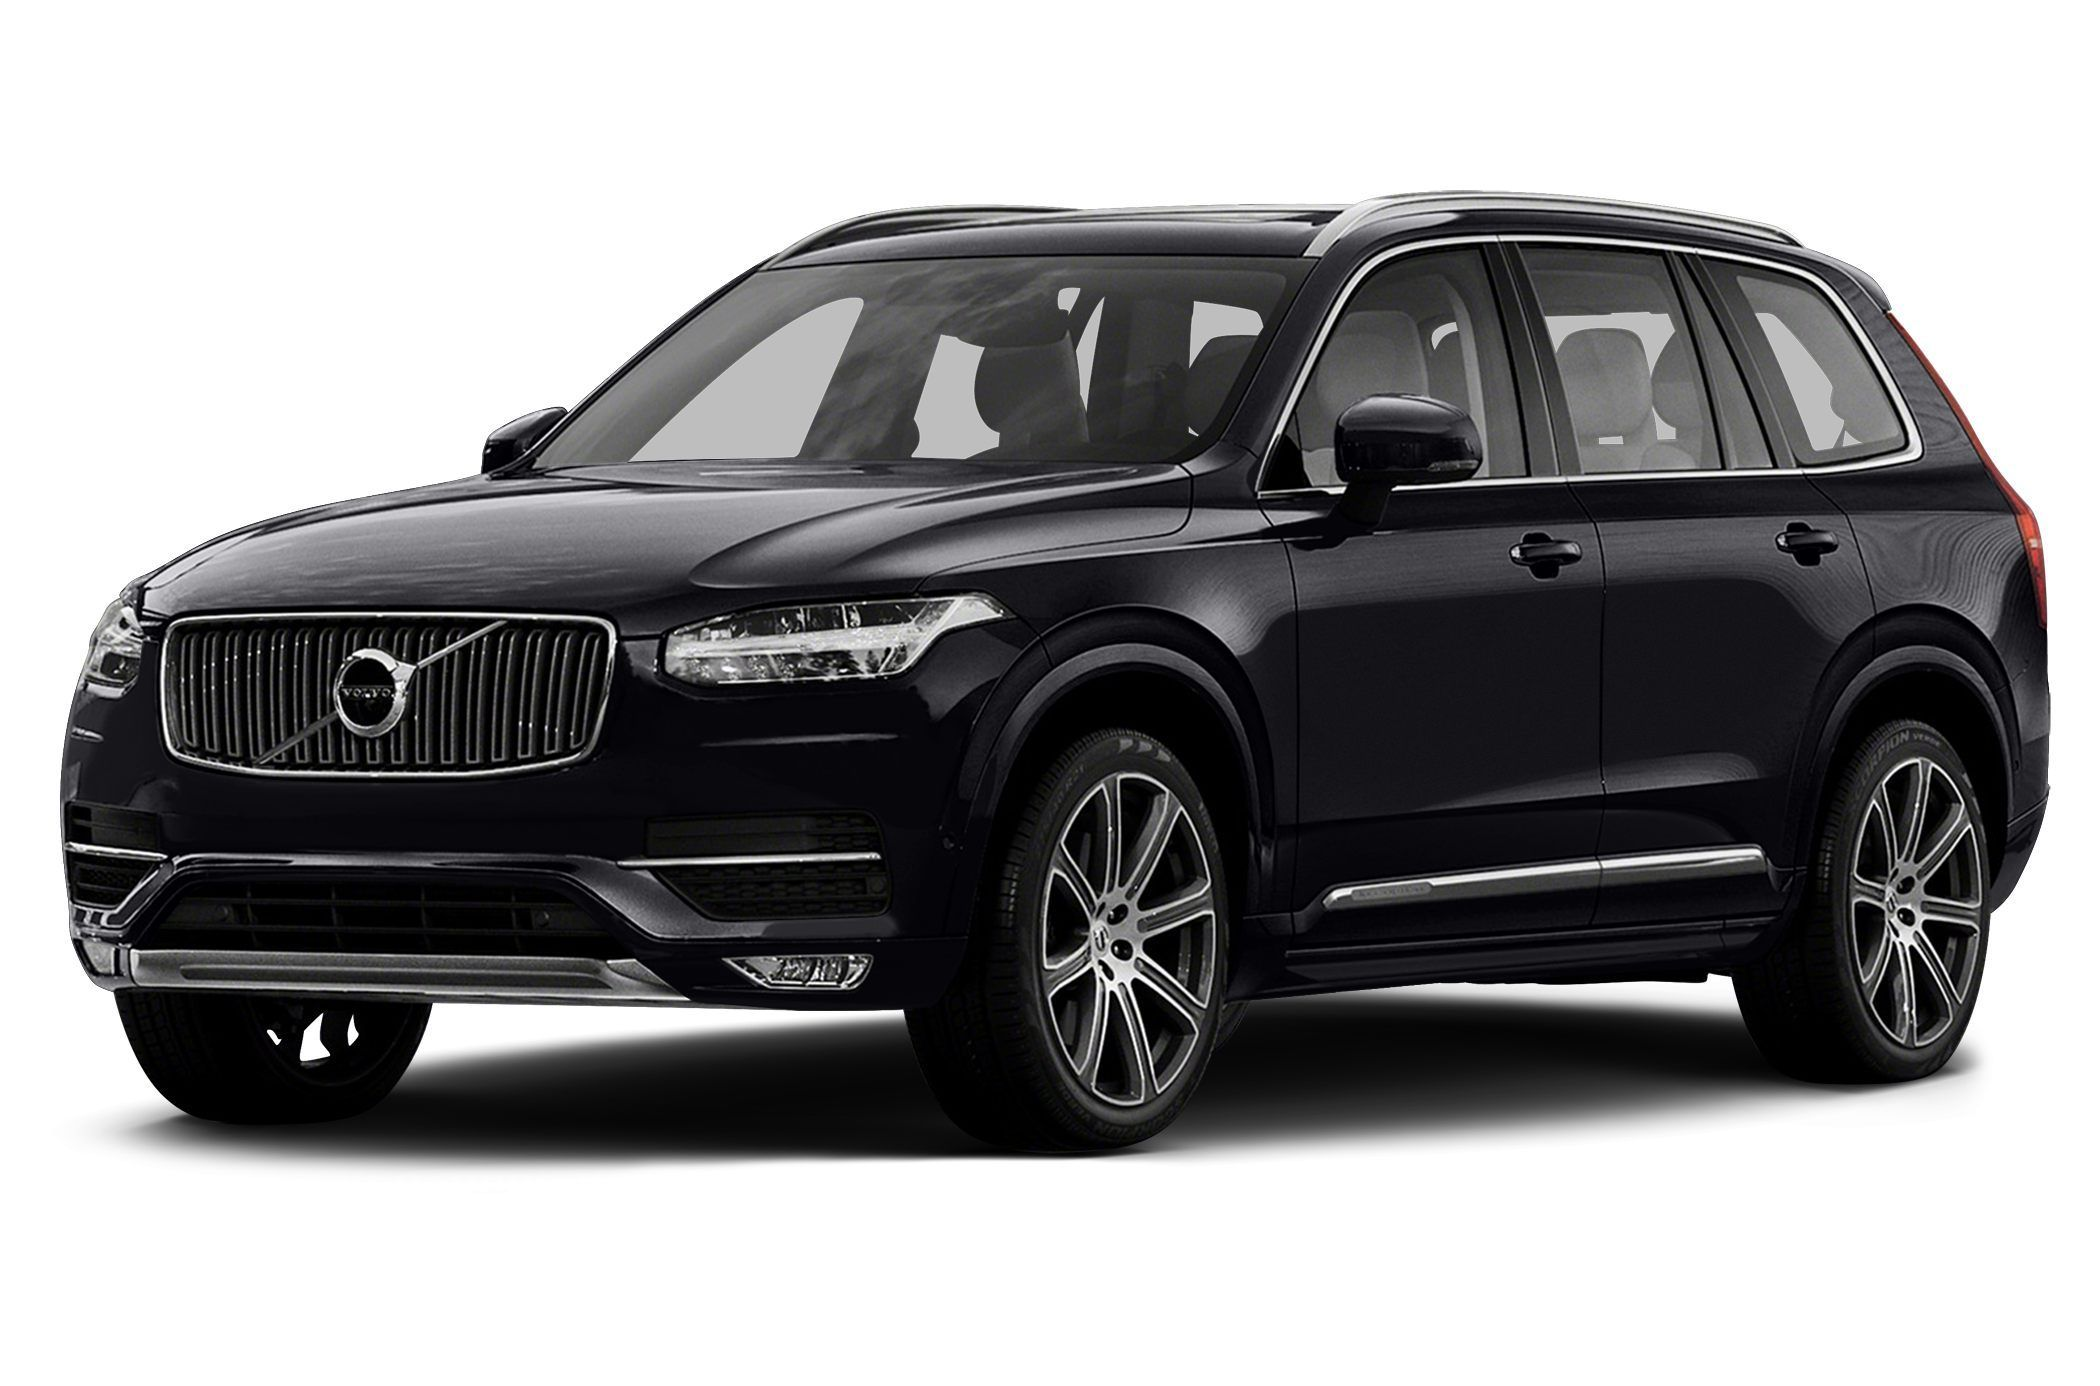 2017 volvo xc90 t6 momentum suv model suv models volvo xc90 and volvo. Black Bedroom Furniture Sets. Home Design Ideas